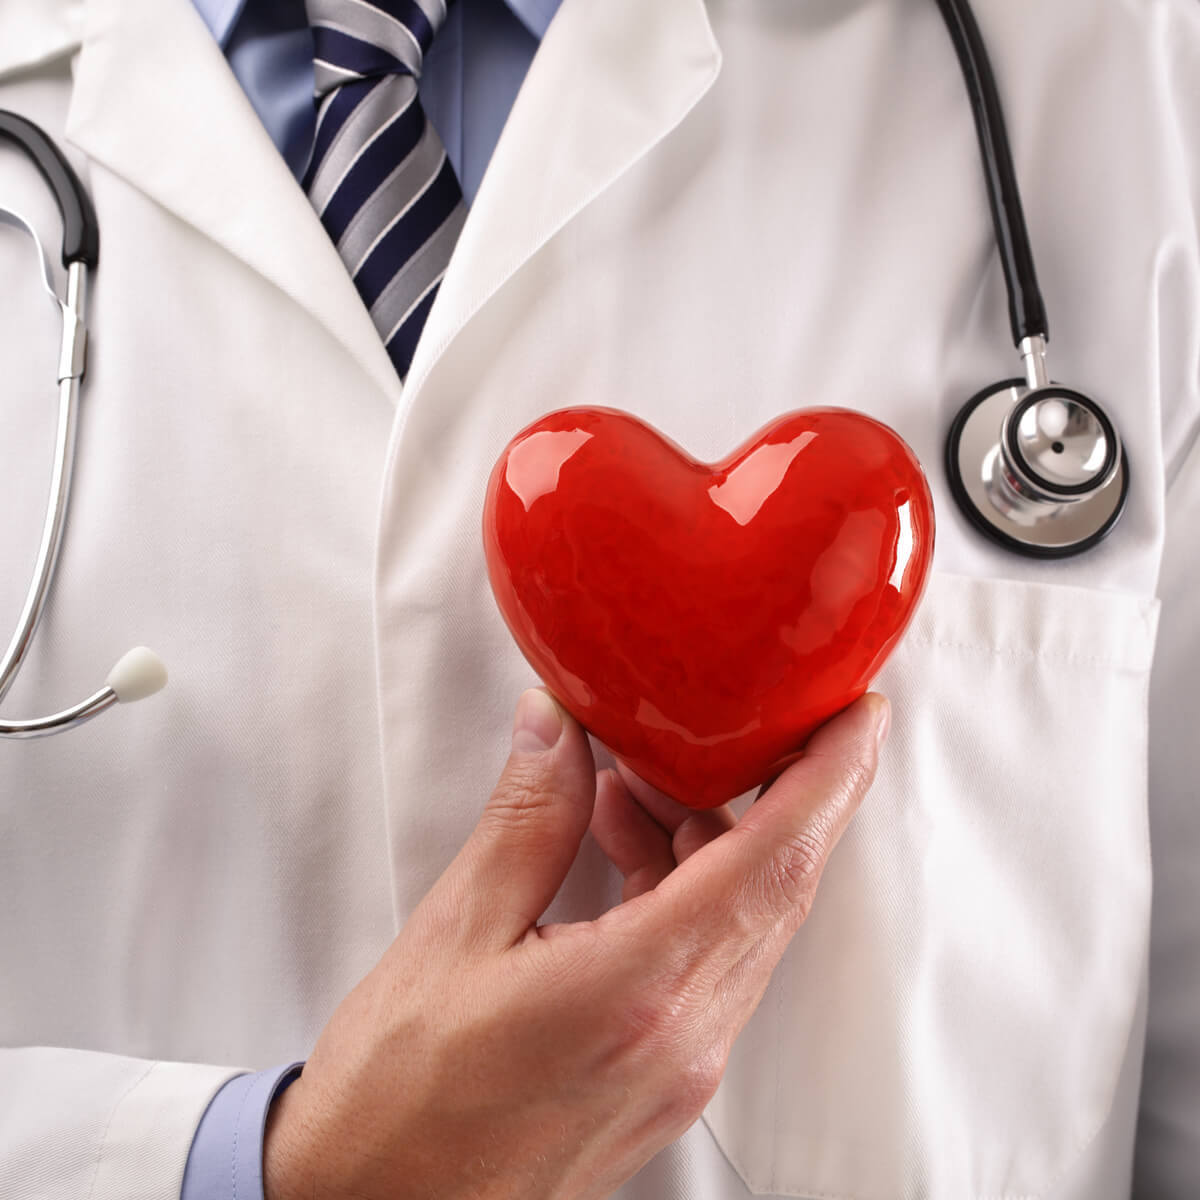 Search for current cardiologist openings and register a cardiologist vacancy